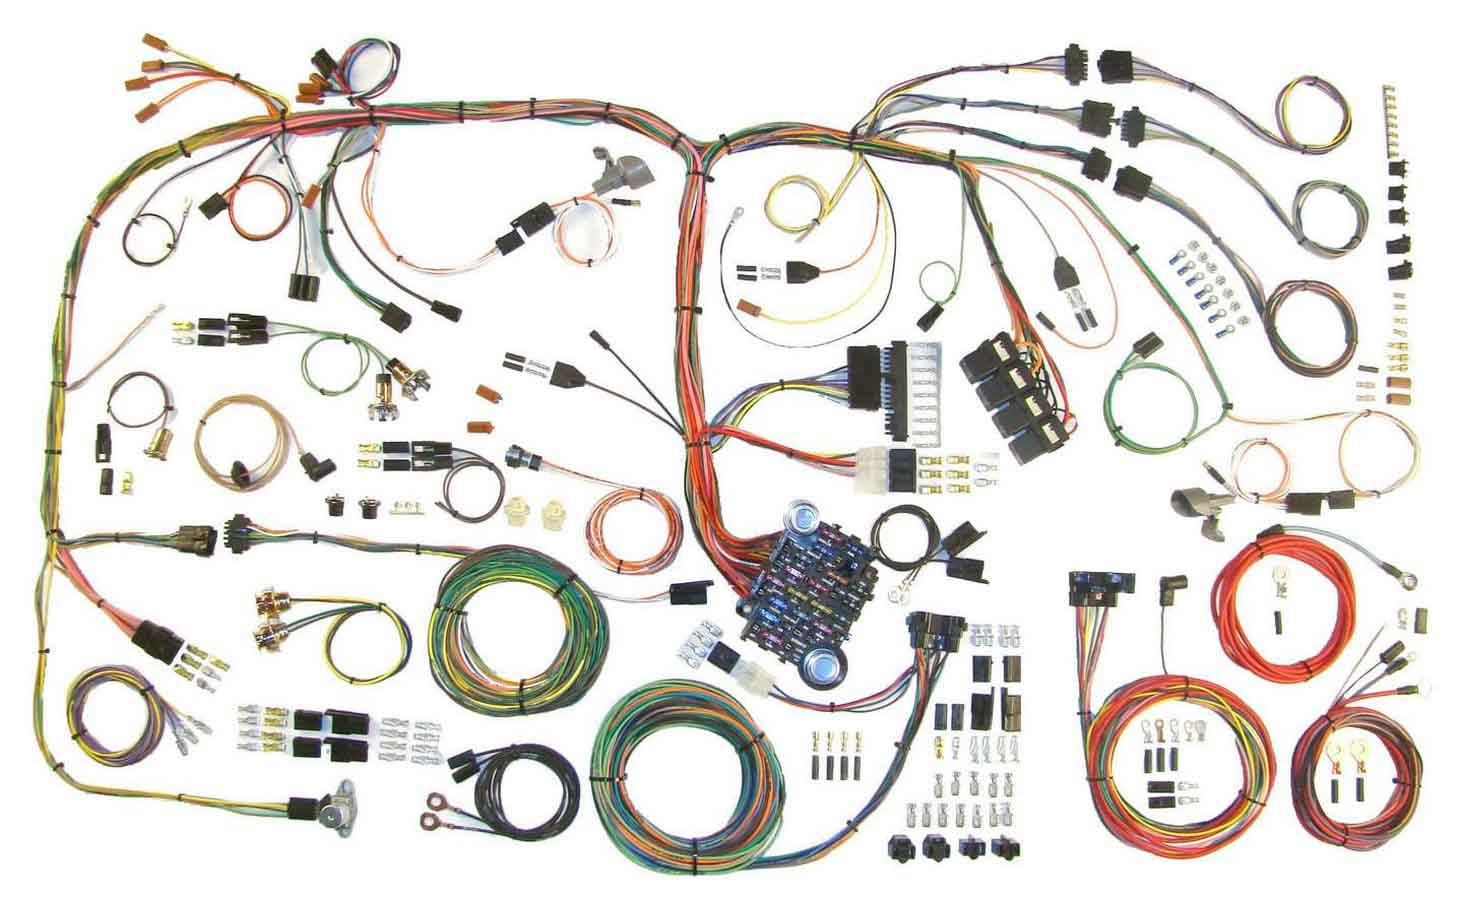 hight resolution of american autowire wiring system challenger 1970 74 kit p n 510289 walmart com